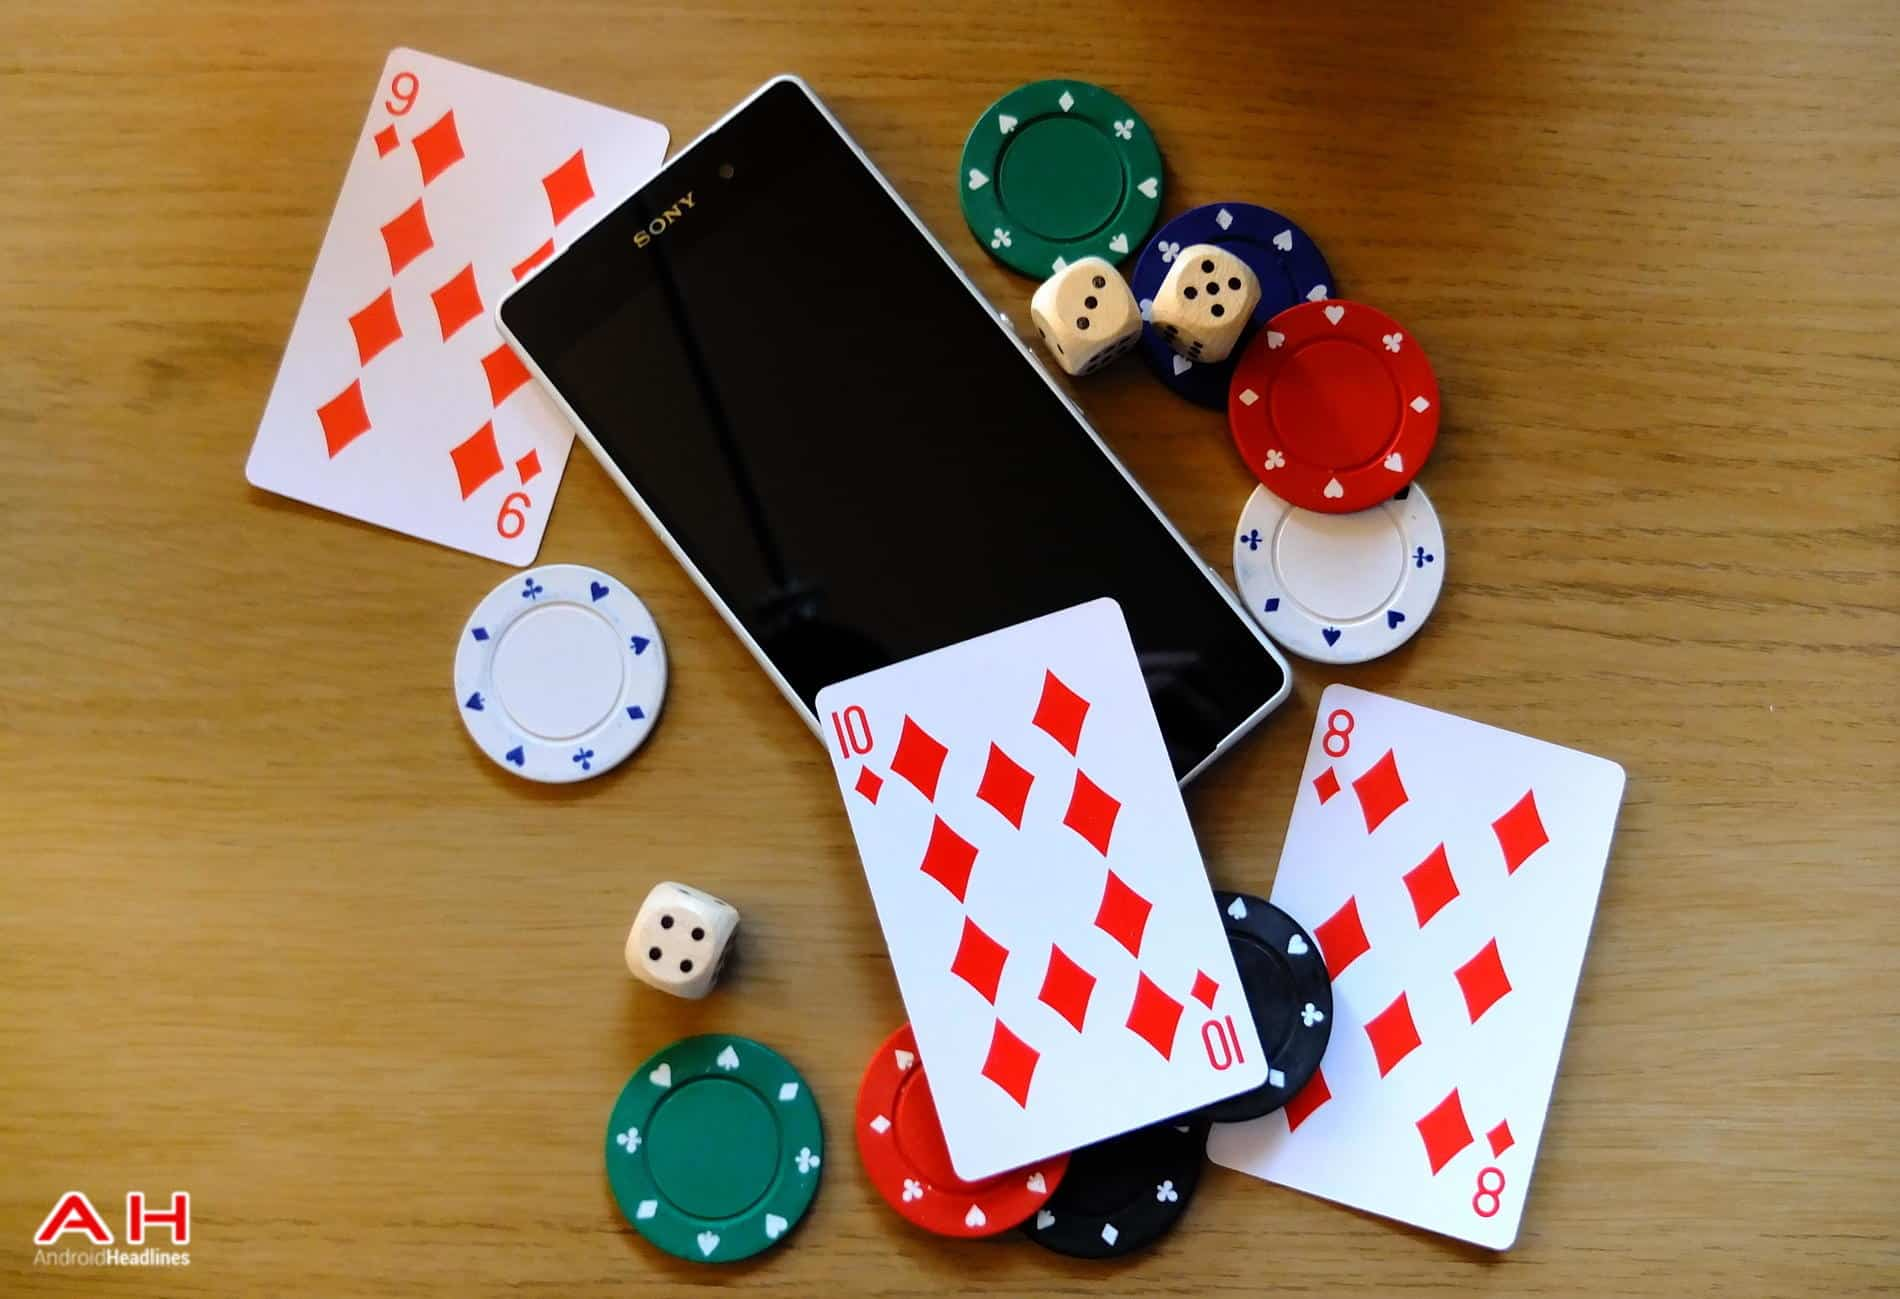 free android poker